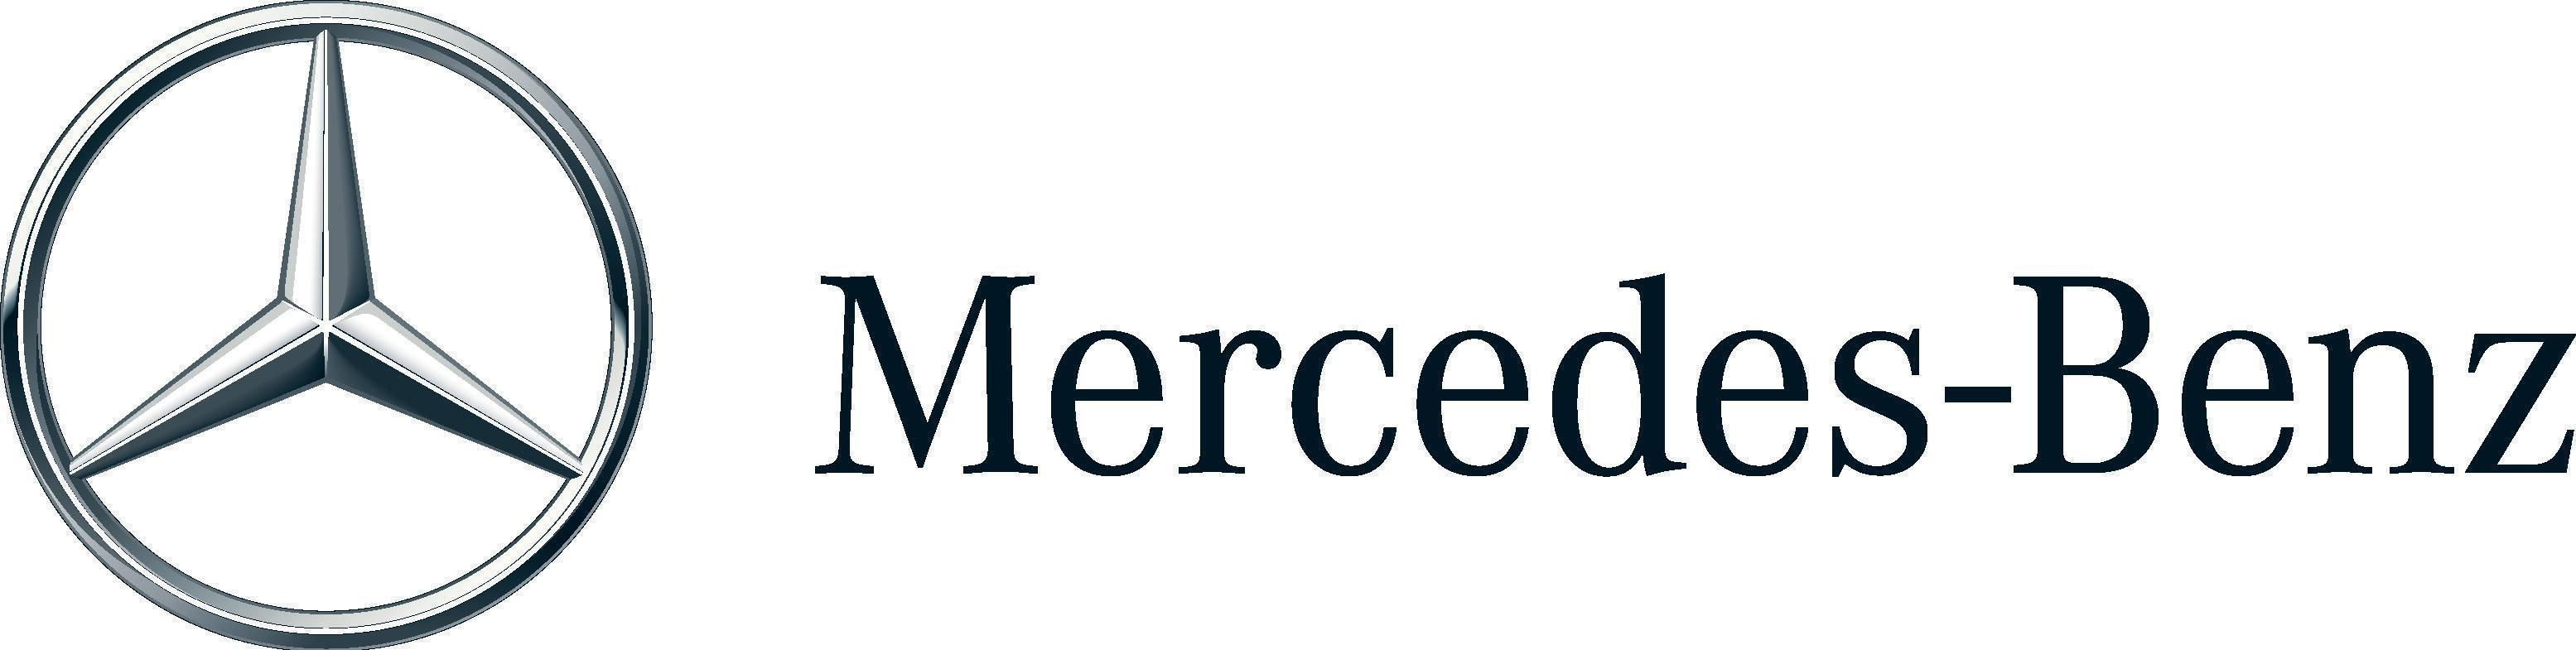 Mercedes benz entry level jobs and internships for Mercedes benz career